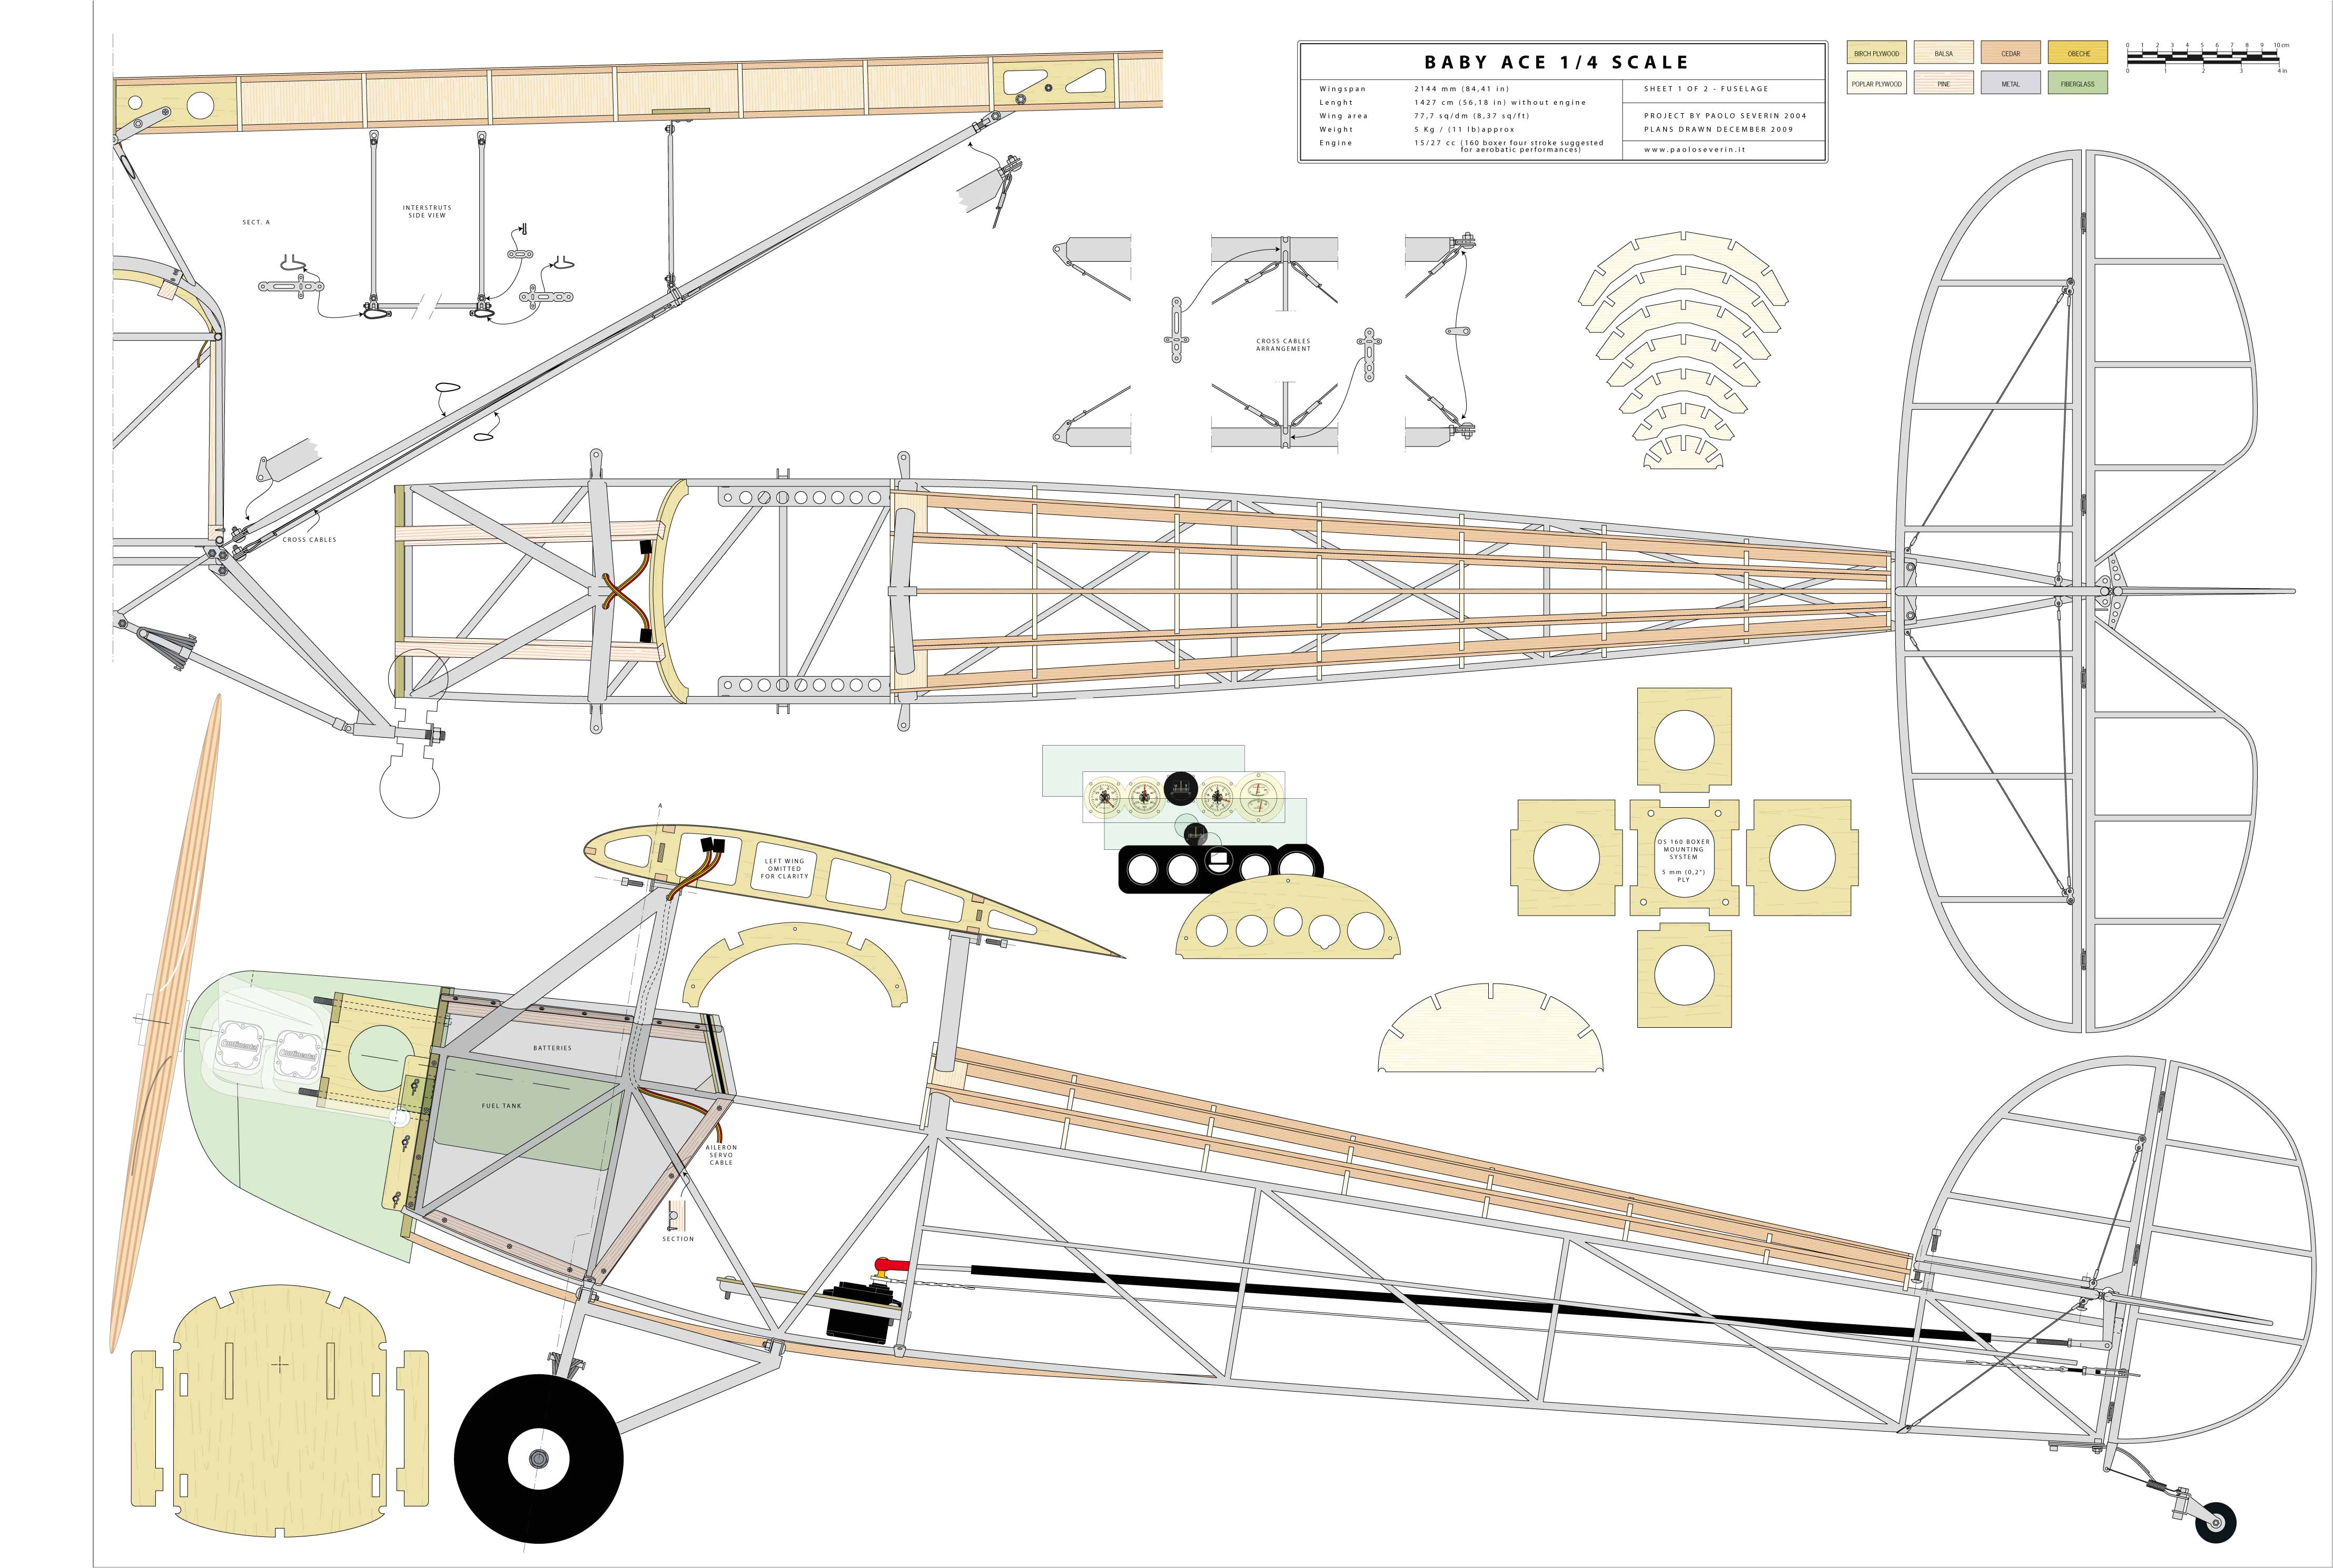 baby ace the first home built aircraft in the world 2